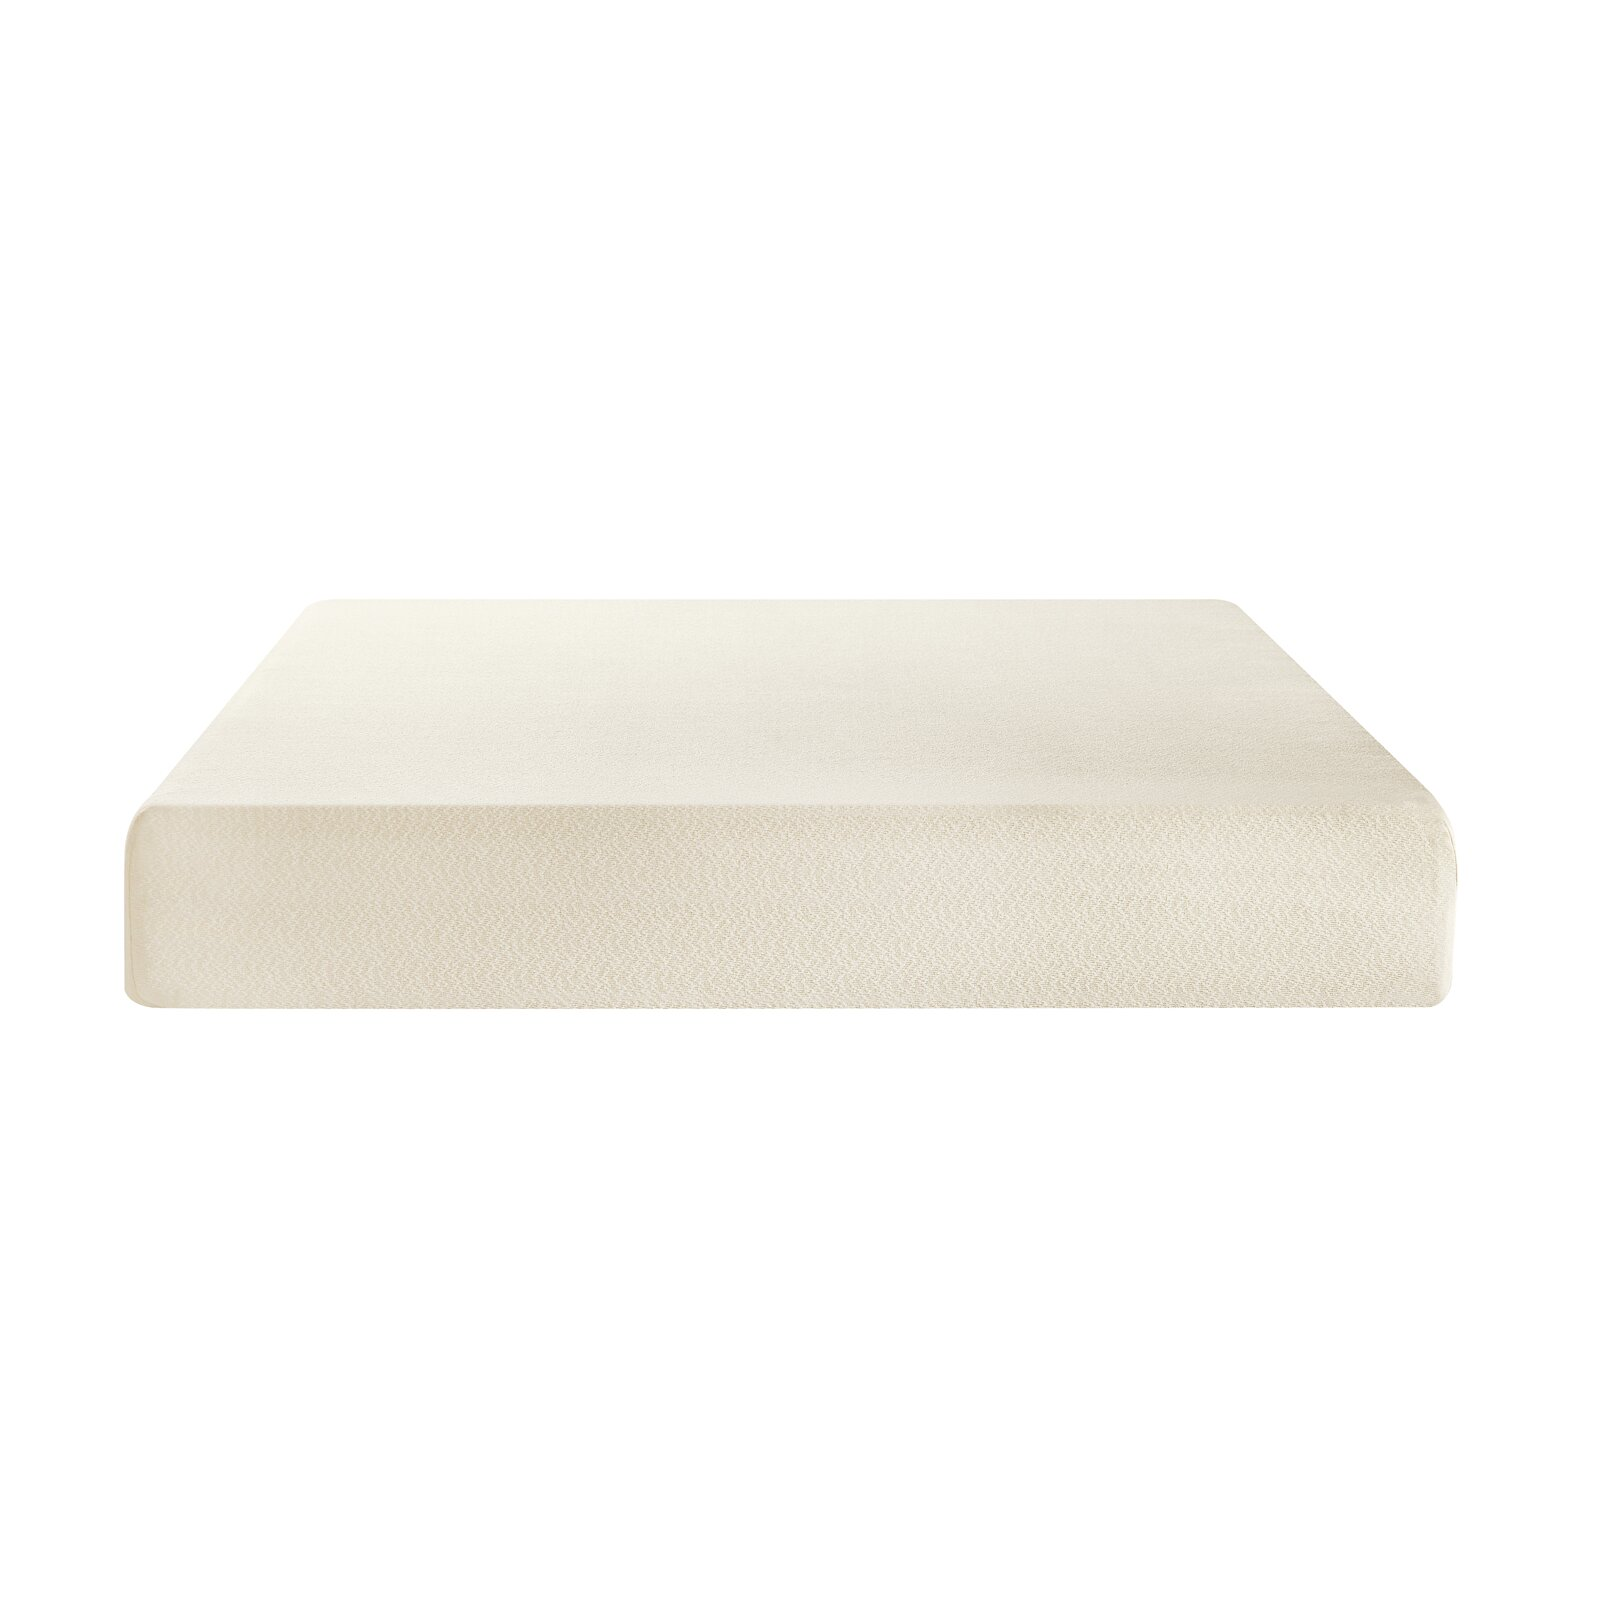 "Wayfair Sleep Wayfair Sleep 8"" Memory Foam Mattress"